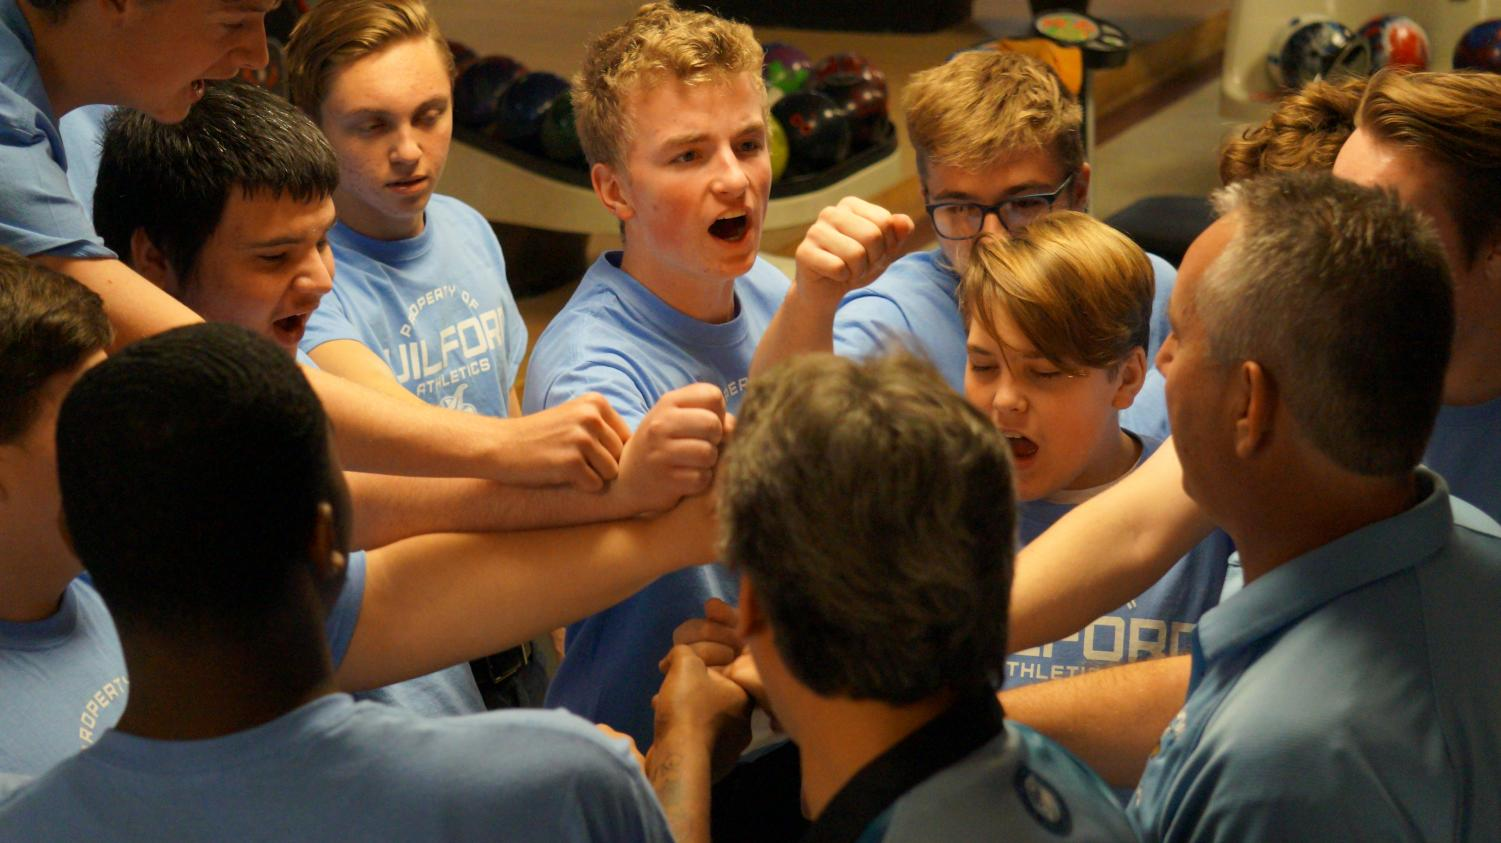 G-Vikes on three: Bowlers Devan Skridla, Wyatt Derry, Job Salberg, Logan Taylor and Coach Jeff Barabas get hyped before taking 3rd place at the Rockford Christian Invite Tournament